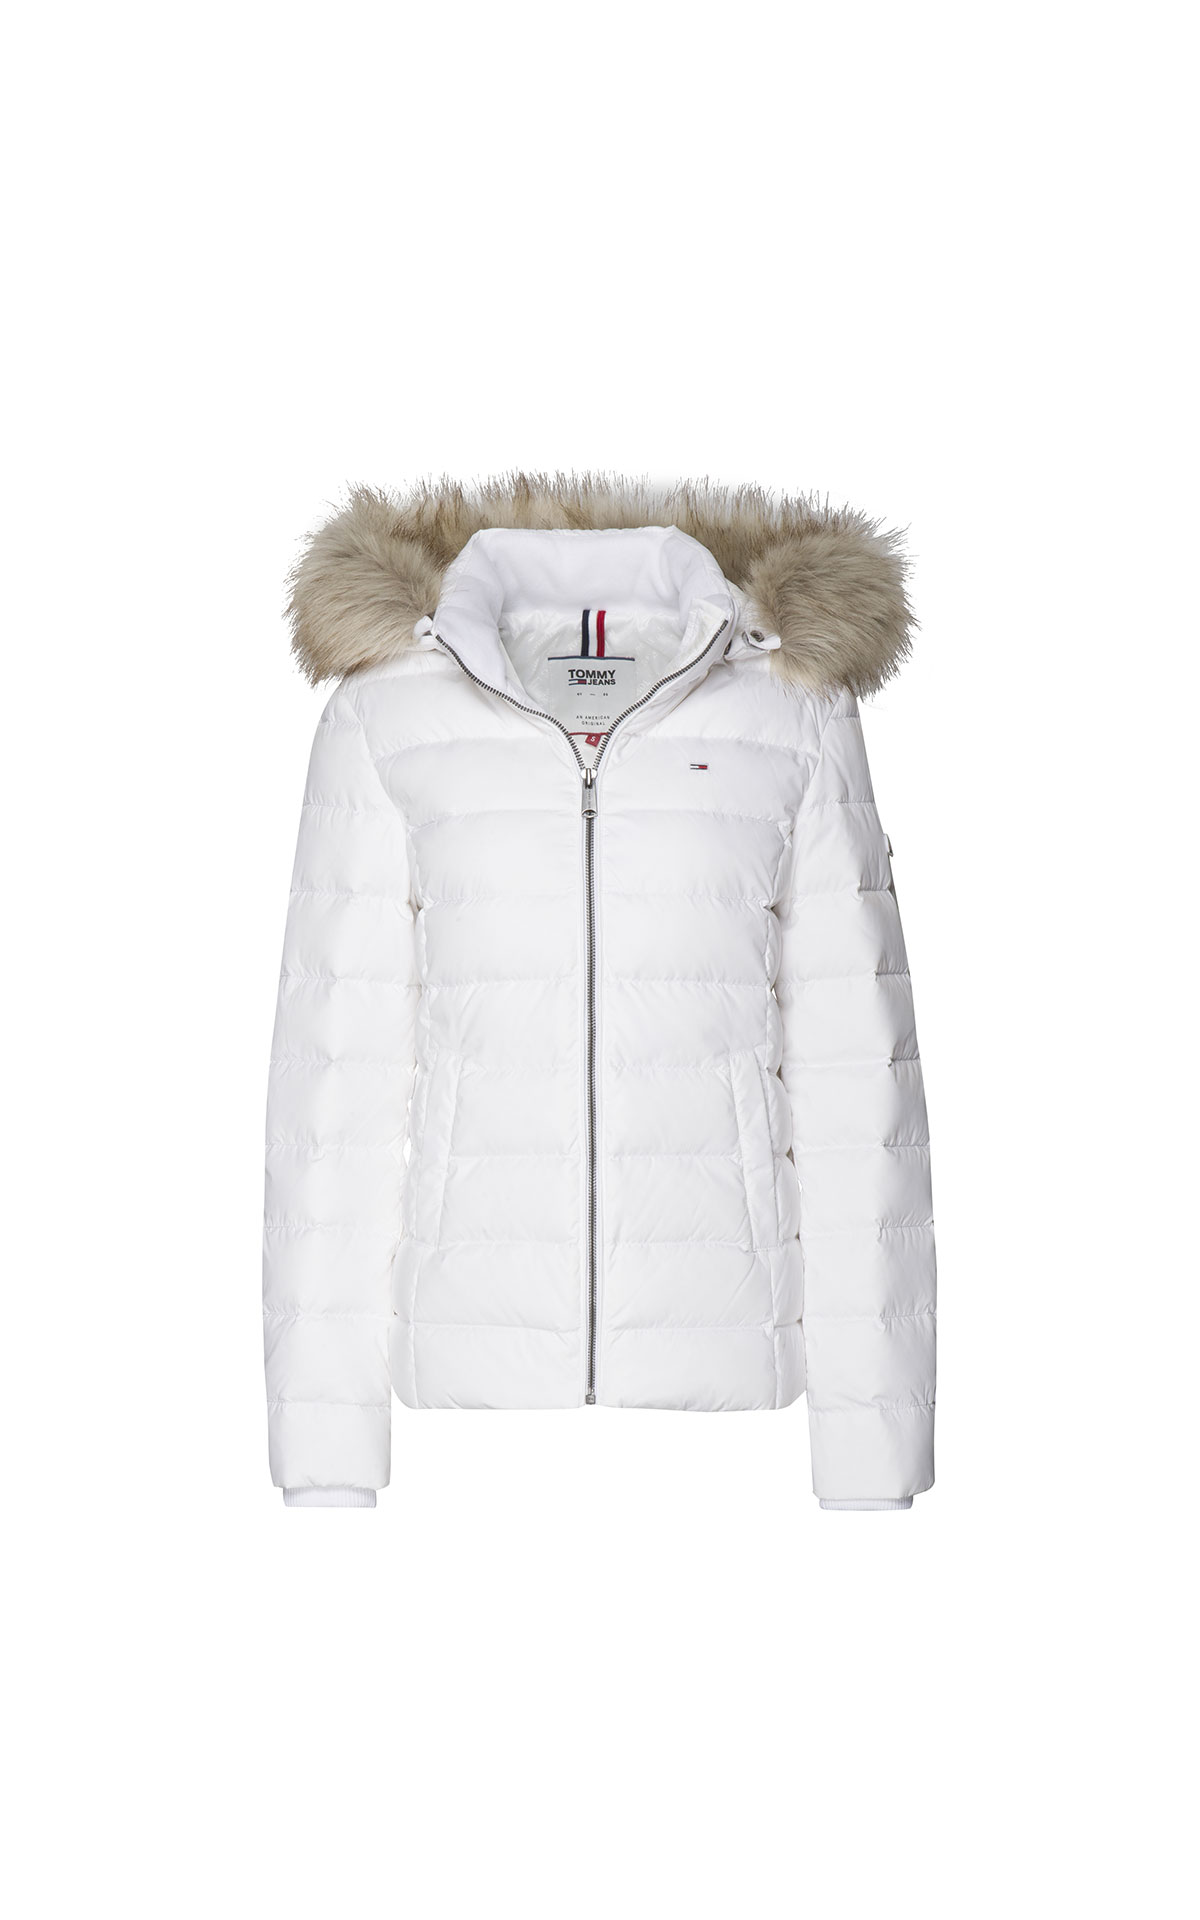 Tommy Hilfiger Women's Tommy Jeans Hooded Down Jacket